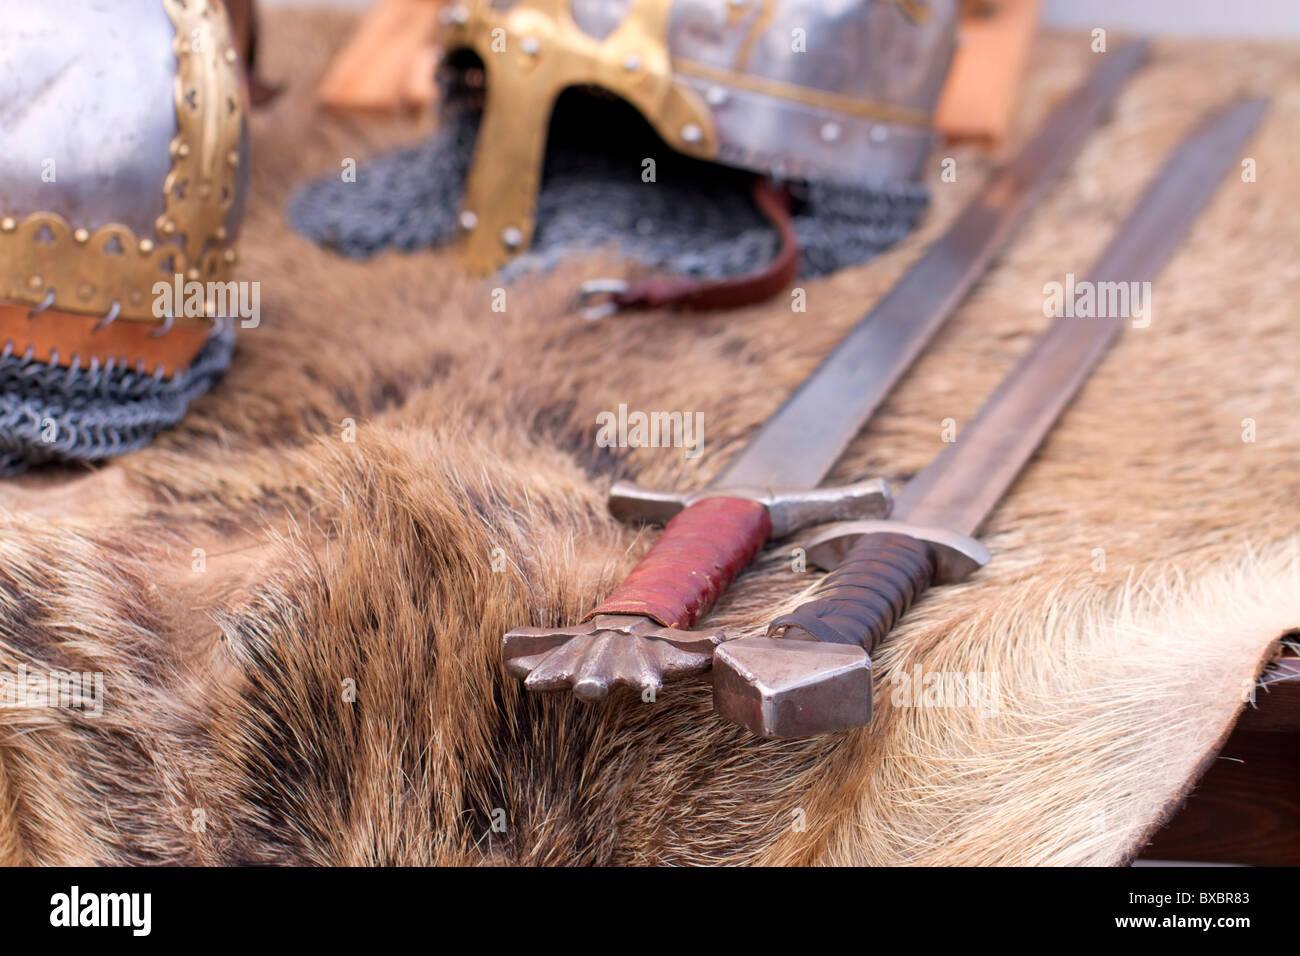 European medieval Slavic swords and helmets displayed on animal fur Stock Photo